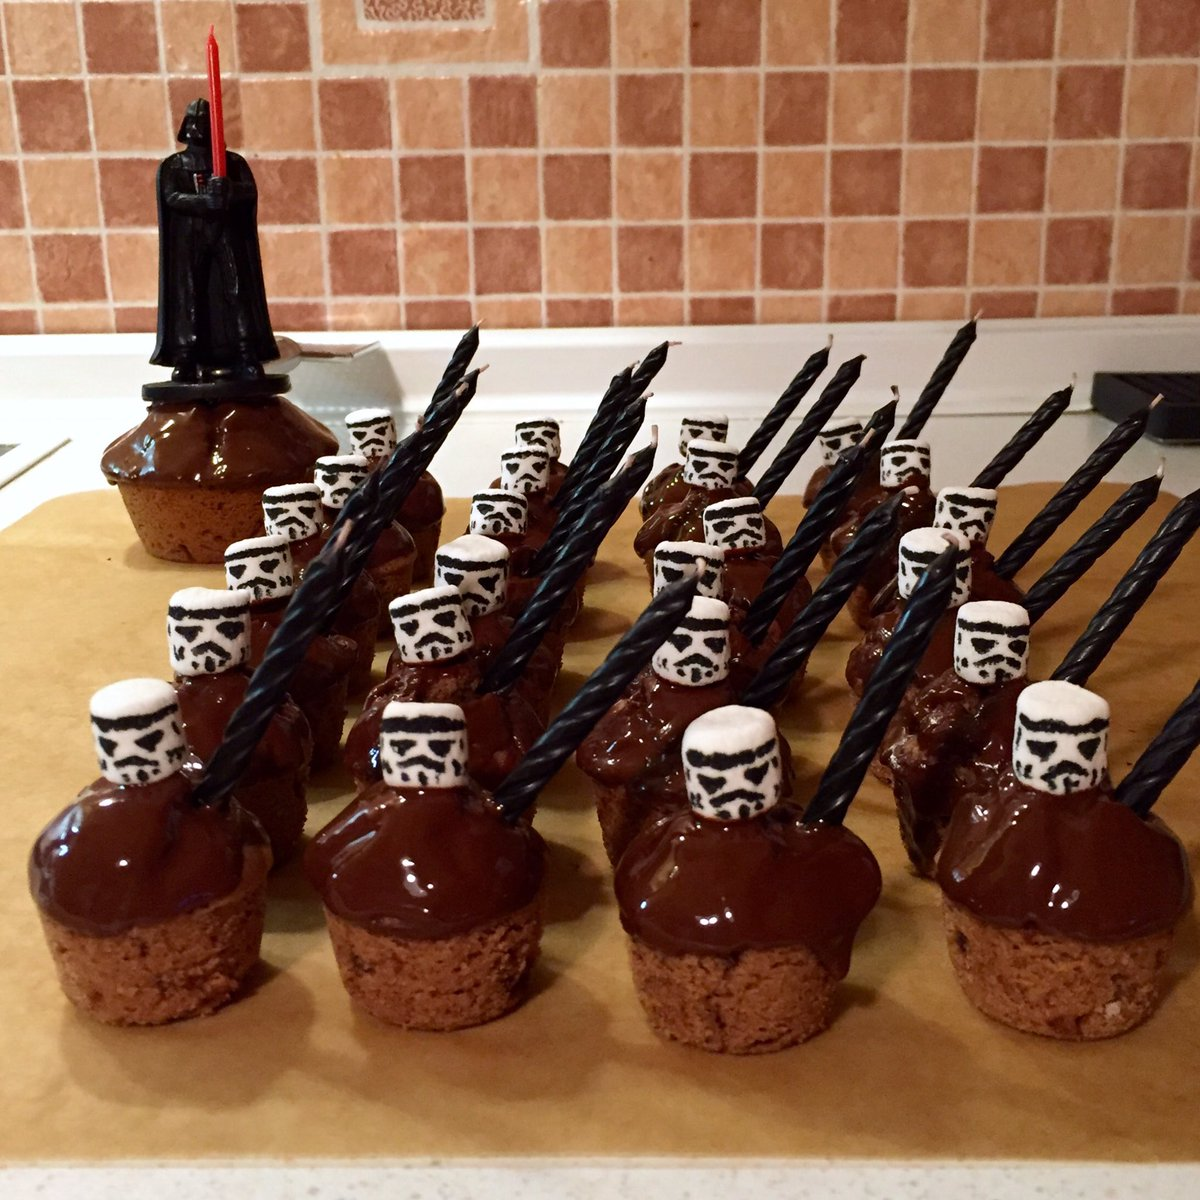 #Geek Awesome of the Day: #StarWars #Stormtrooper & #DarthVader #Muffins #Cakes v/ @KasuomiRetro #SamaCake #SamaGeek